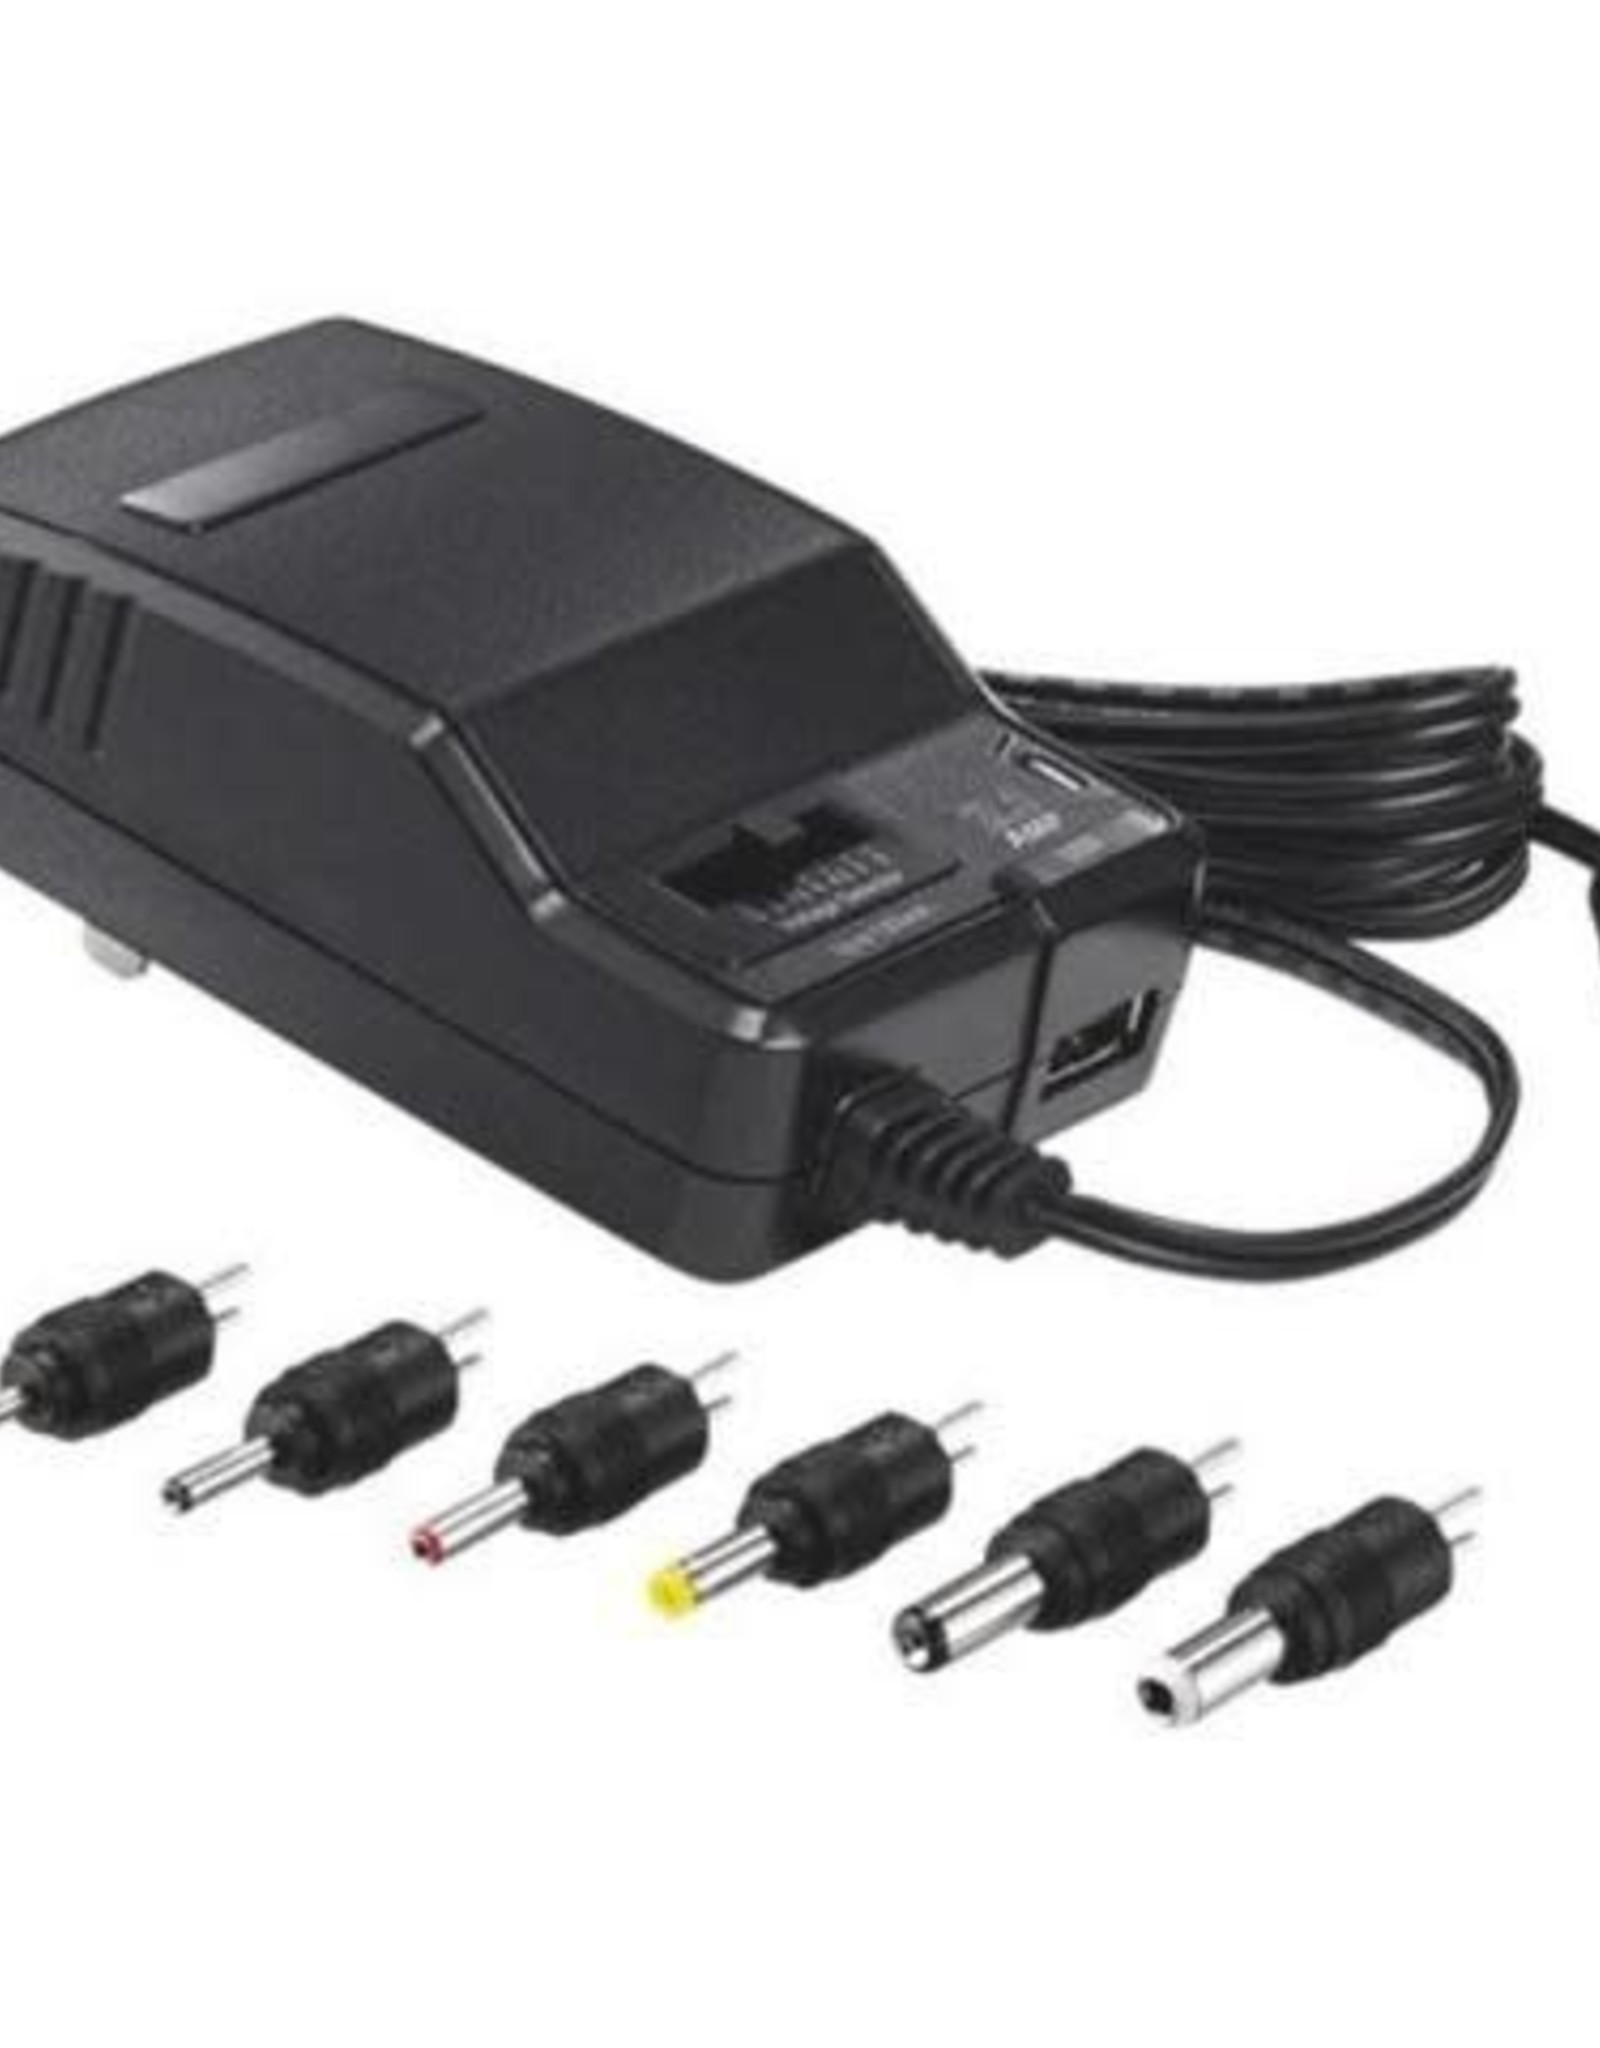 SO Insignia Universal AC Adapter with USB port NS-AC1200-C